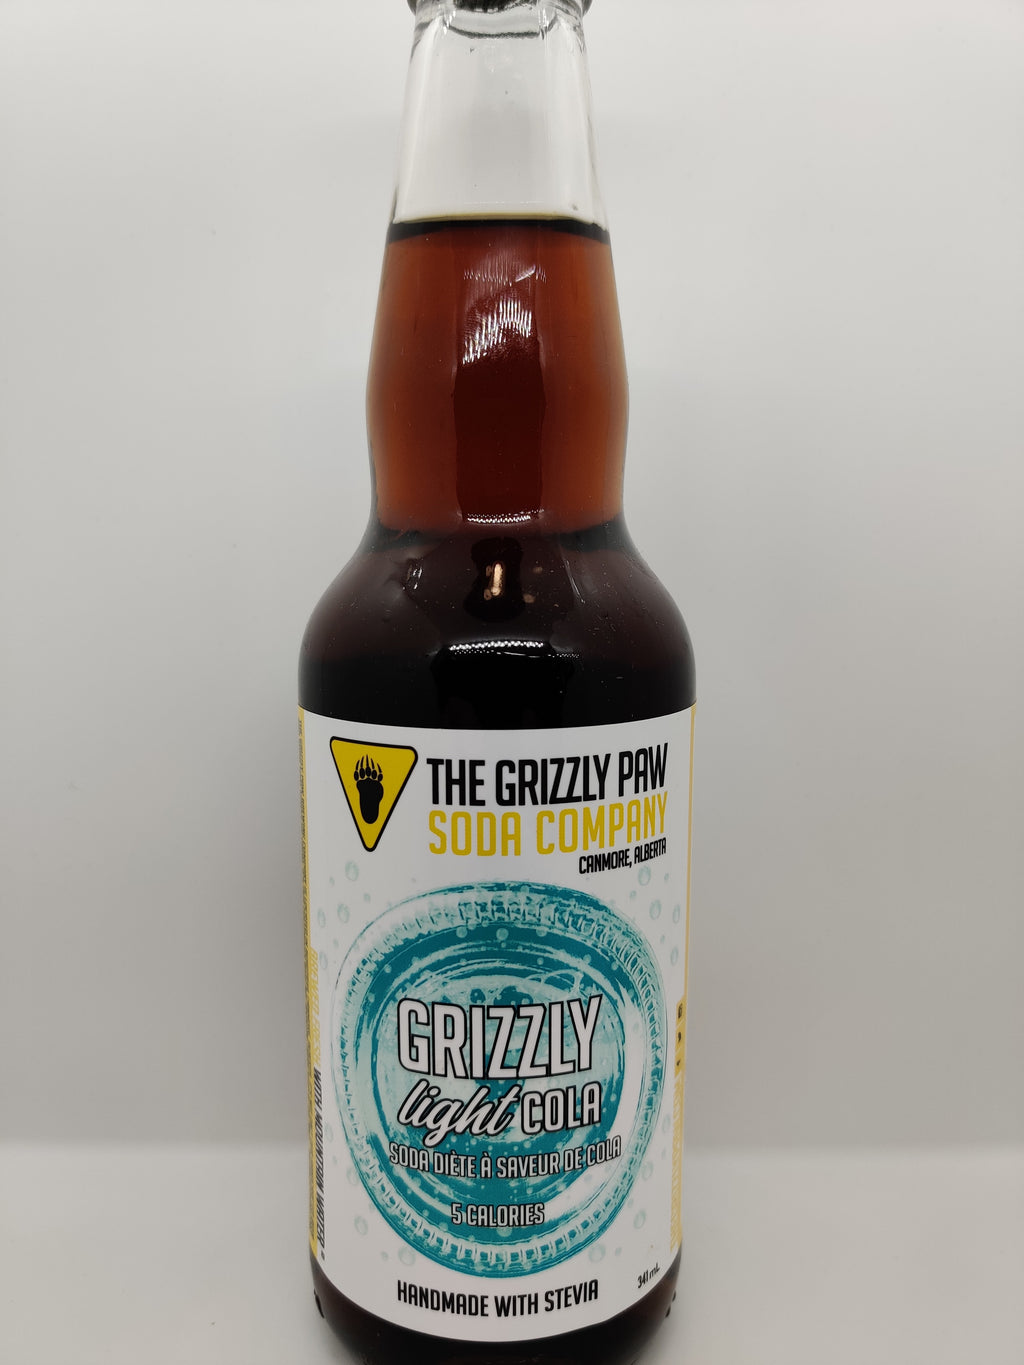 Grizzly Paw Soda 4 Pack - Light Cola